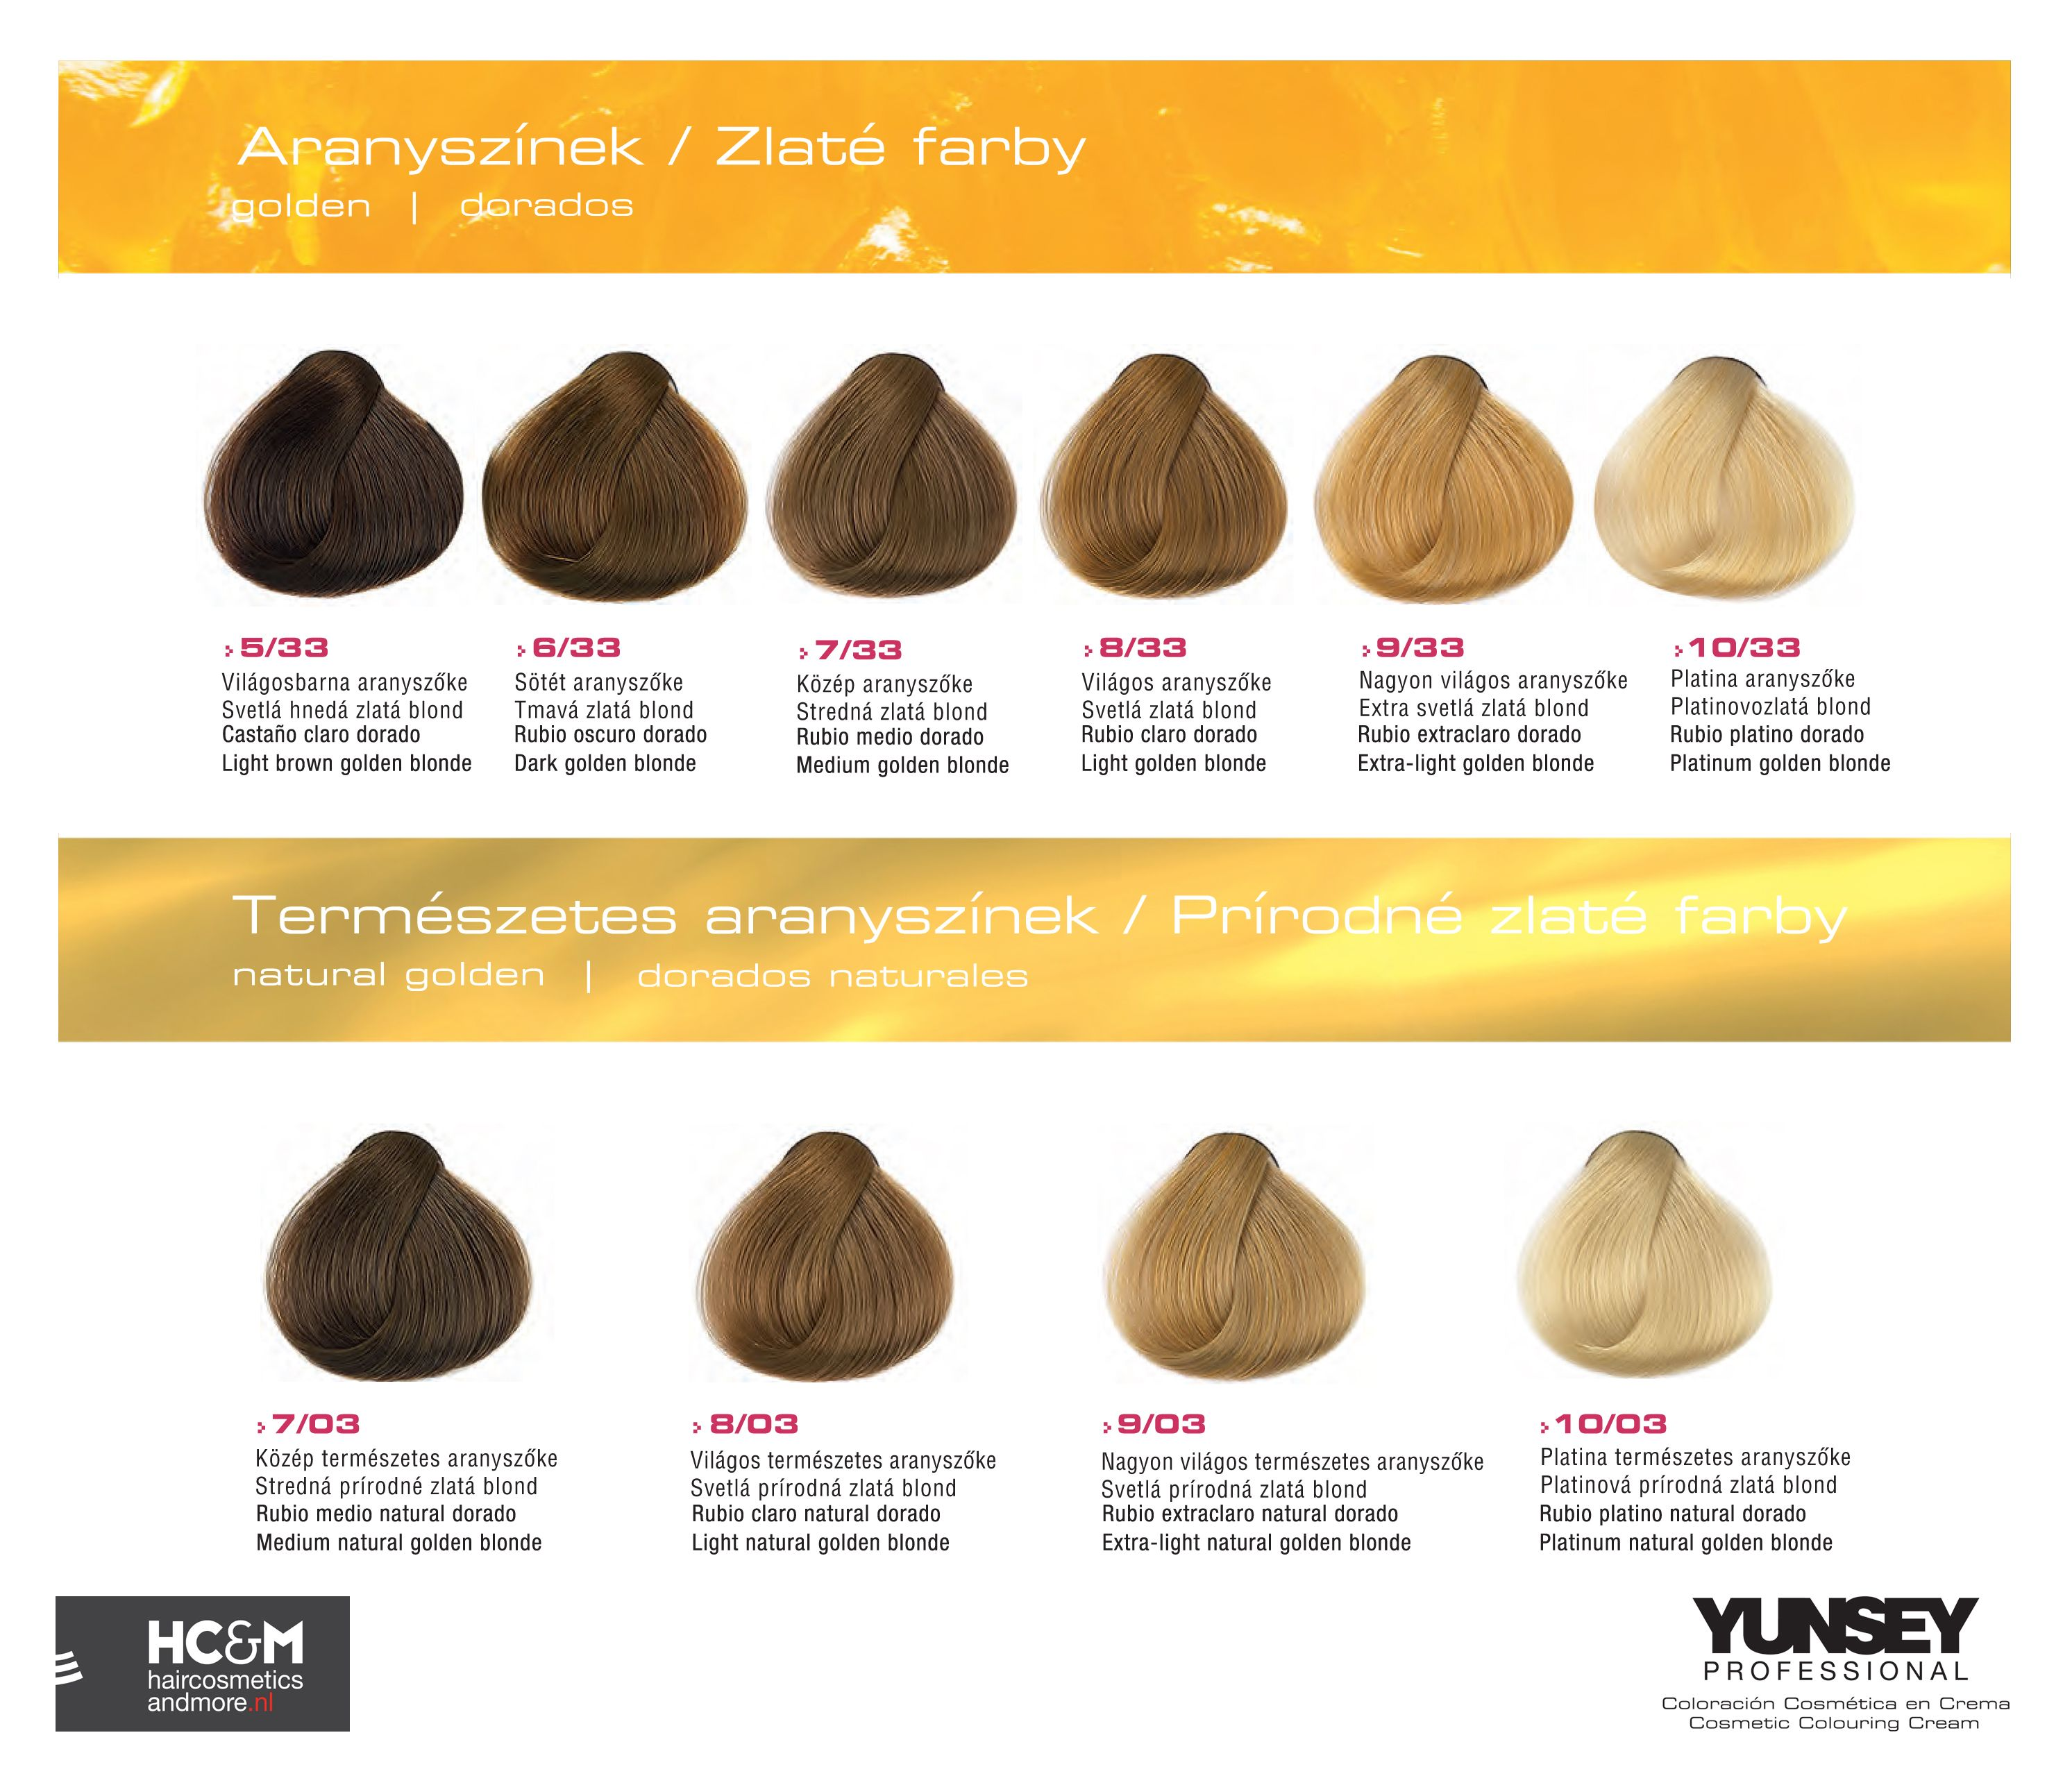 Yunsey Hair Color Deep Naturals. | Yunsey Professional | Pinterest ...